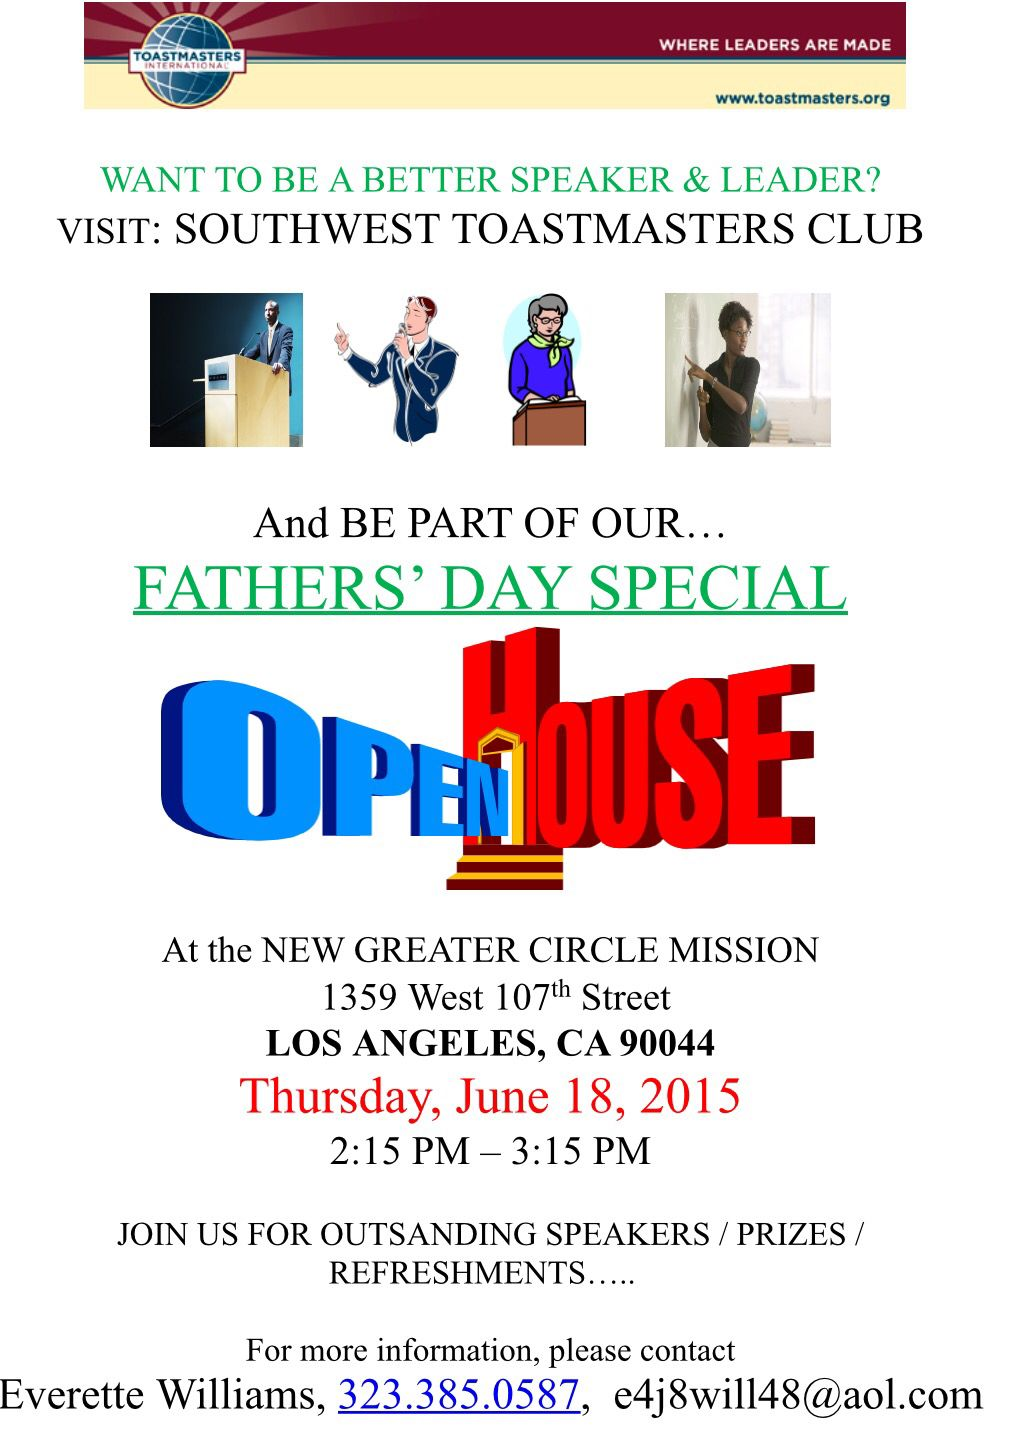 Next Thursday Afternoon Be A Part Of The Fathers Day Special Open House At Southwest Toastmasters Club See Fl Father S Day Specials Best Speakers Fathers Day